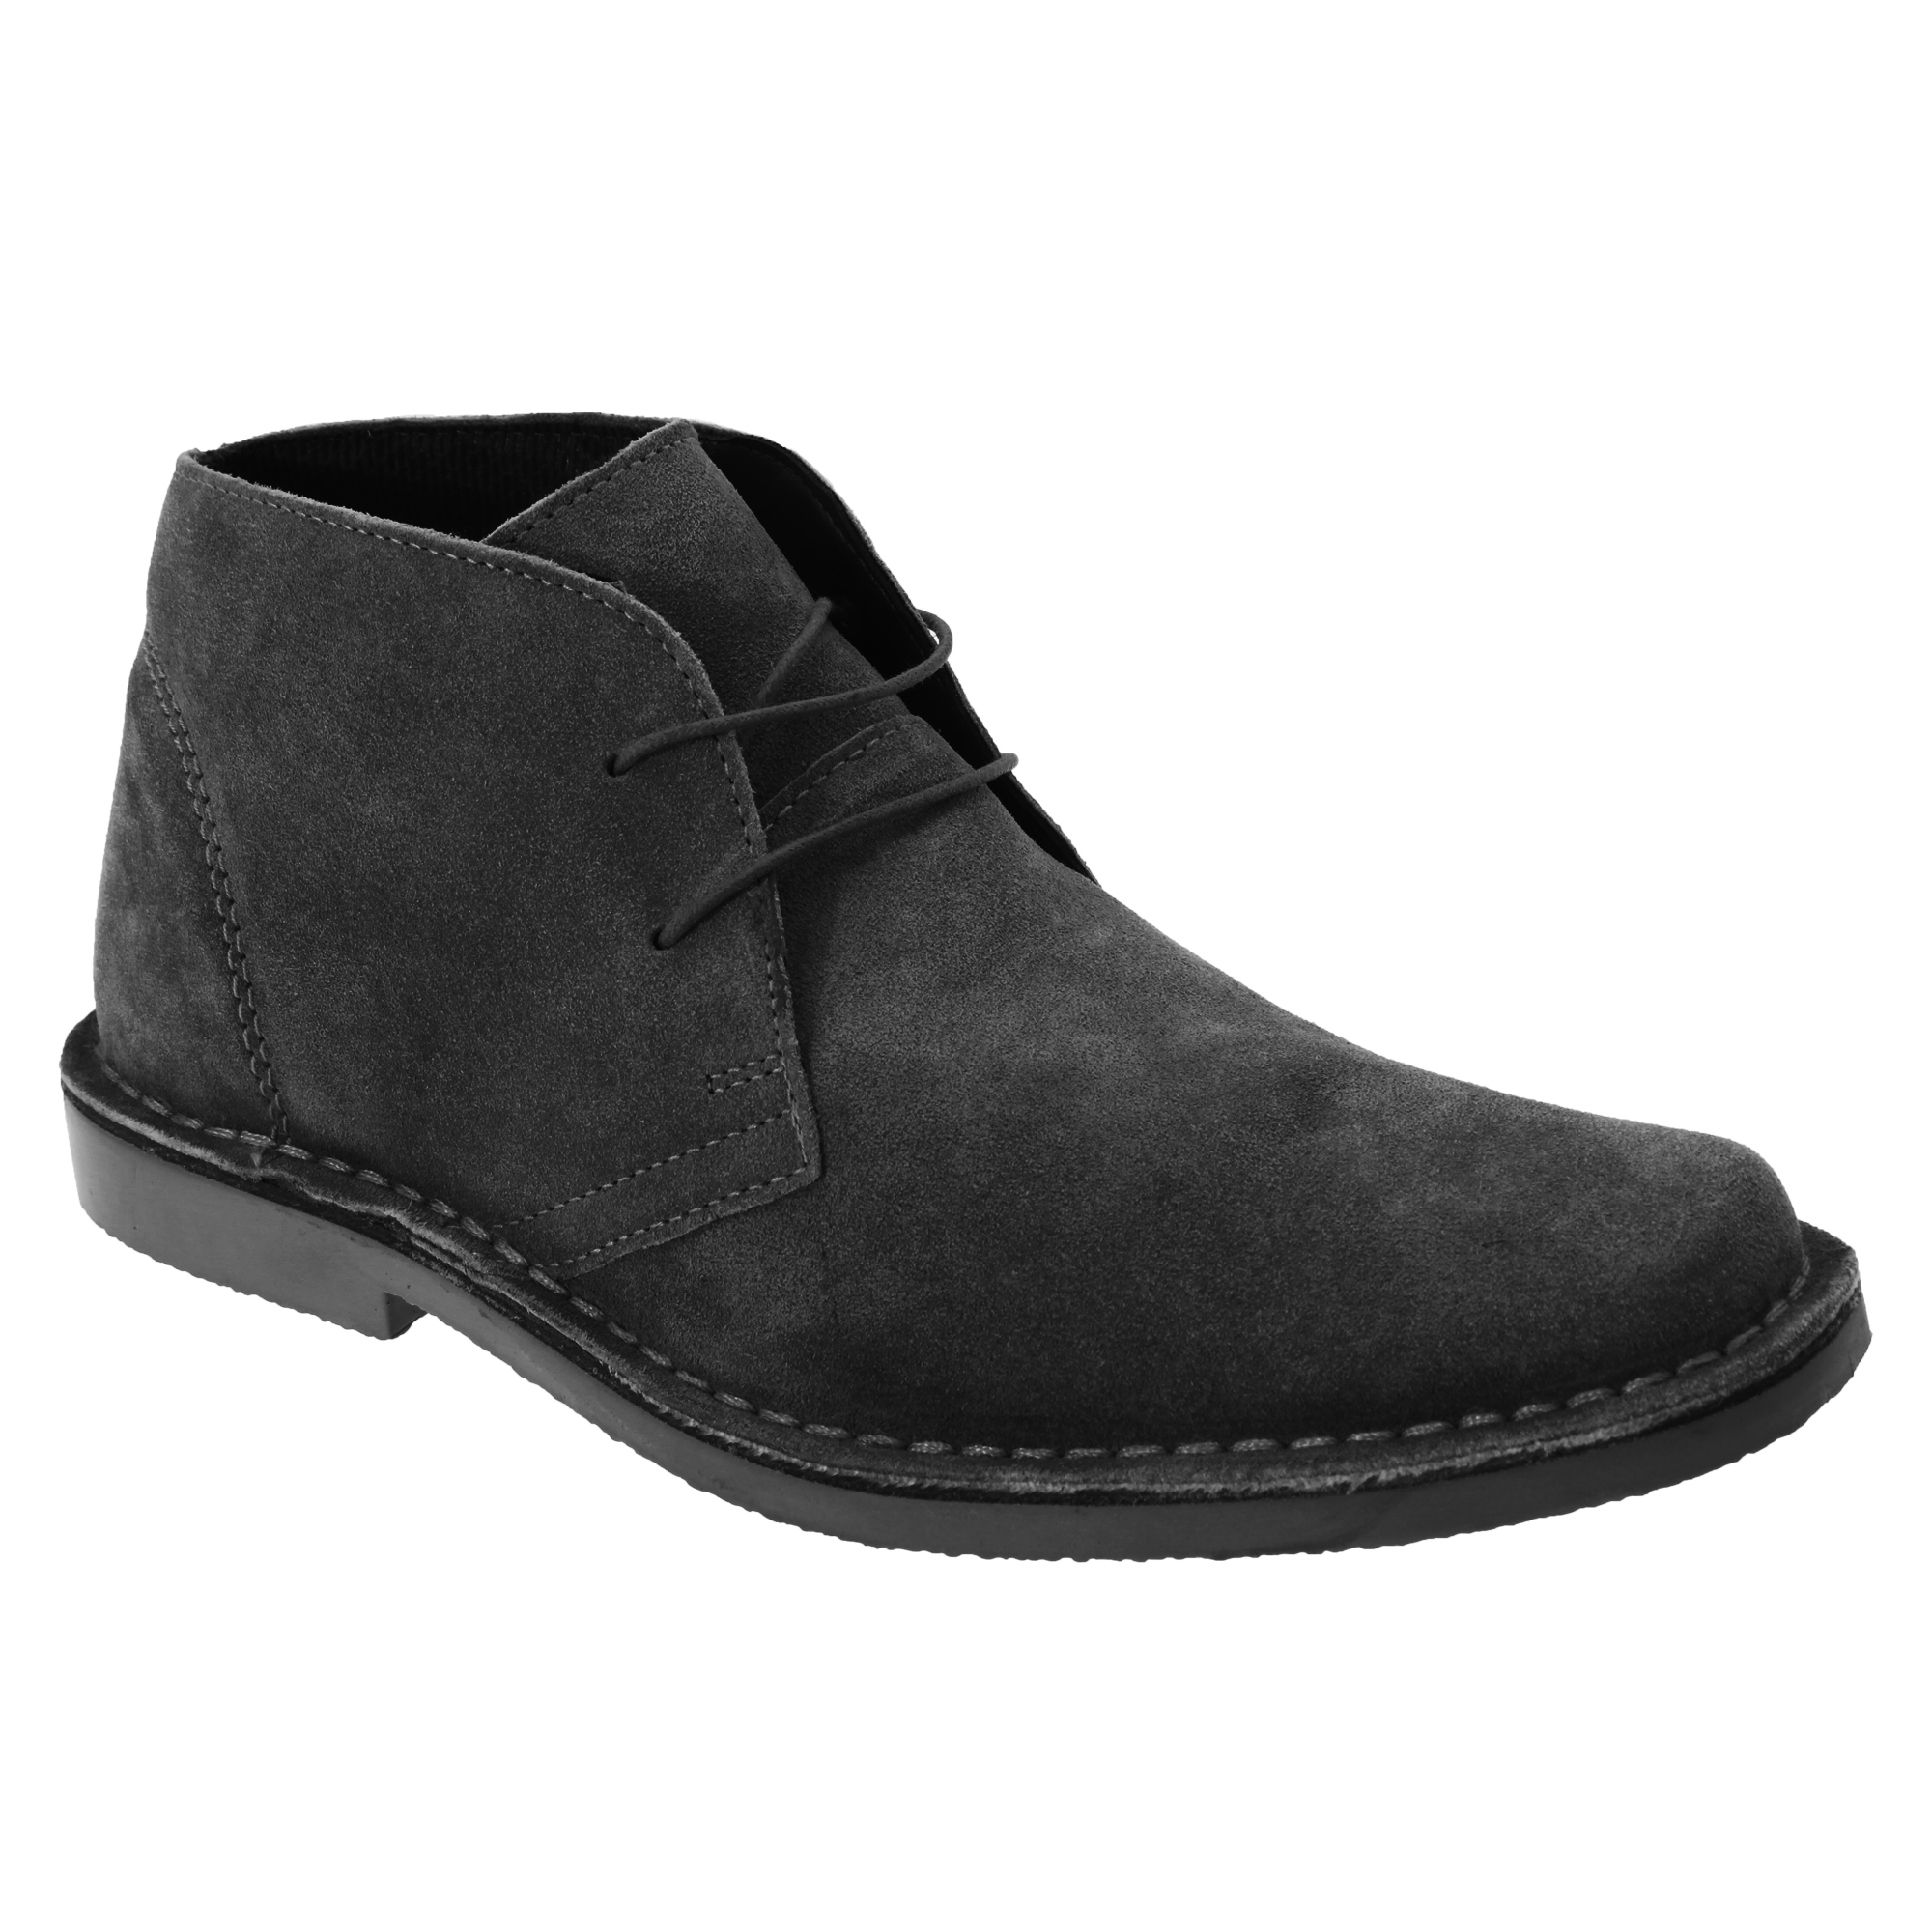 roamers mens real suede classic casual desert ankle boots shoes sizes 7 13 utdf. Black Bedroom Furniture Sets. Home Design Ideas